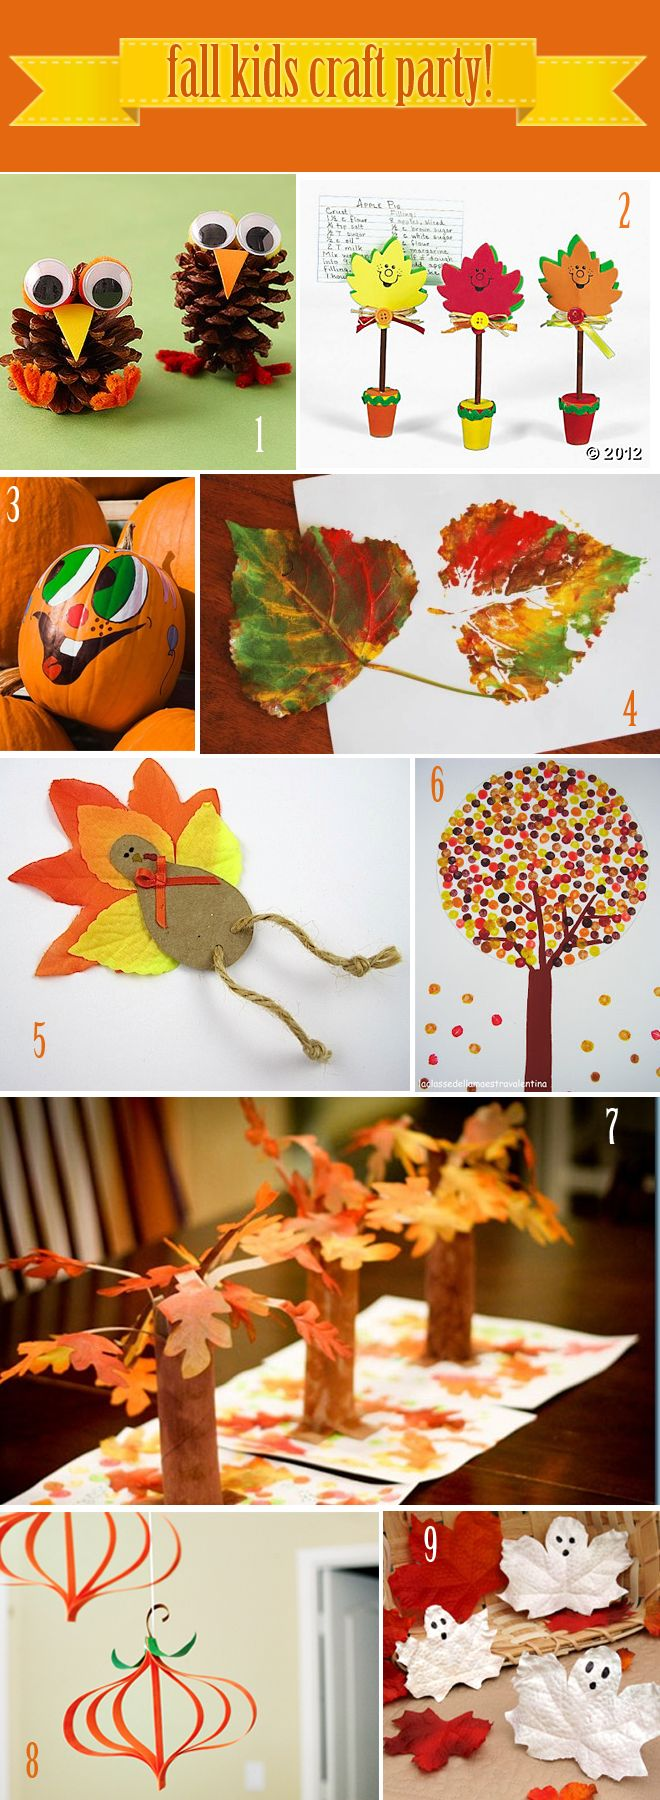 Fall Kids Craft Party Ideas -- fun for them to do while the turkey is cooking!!